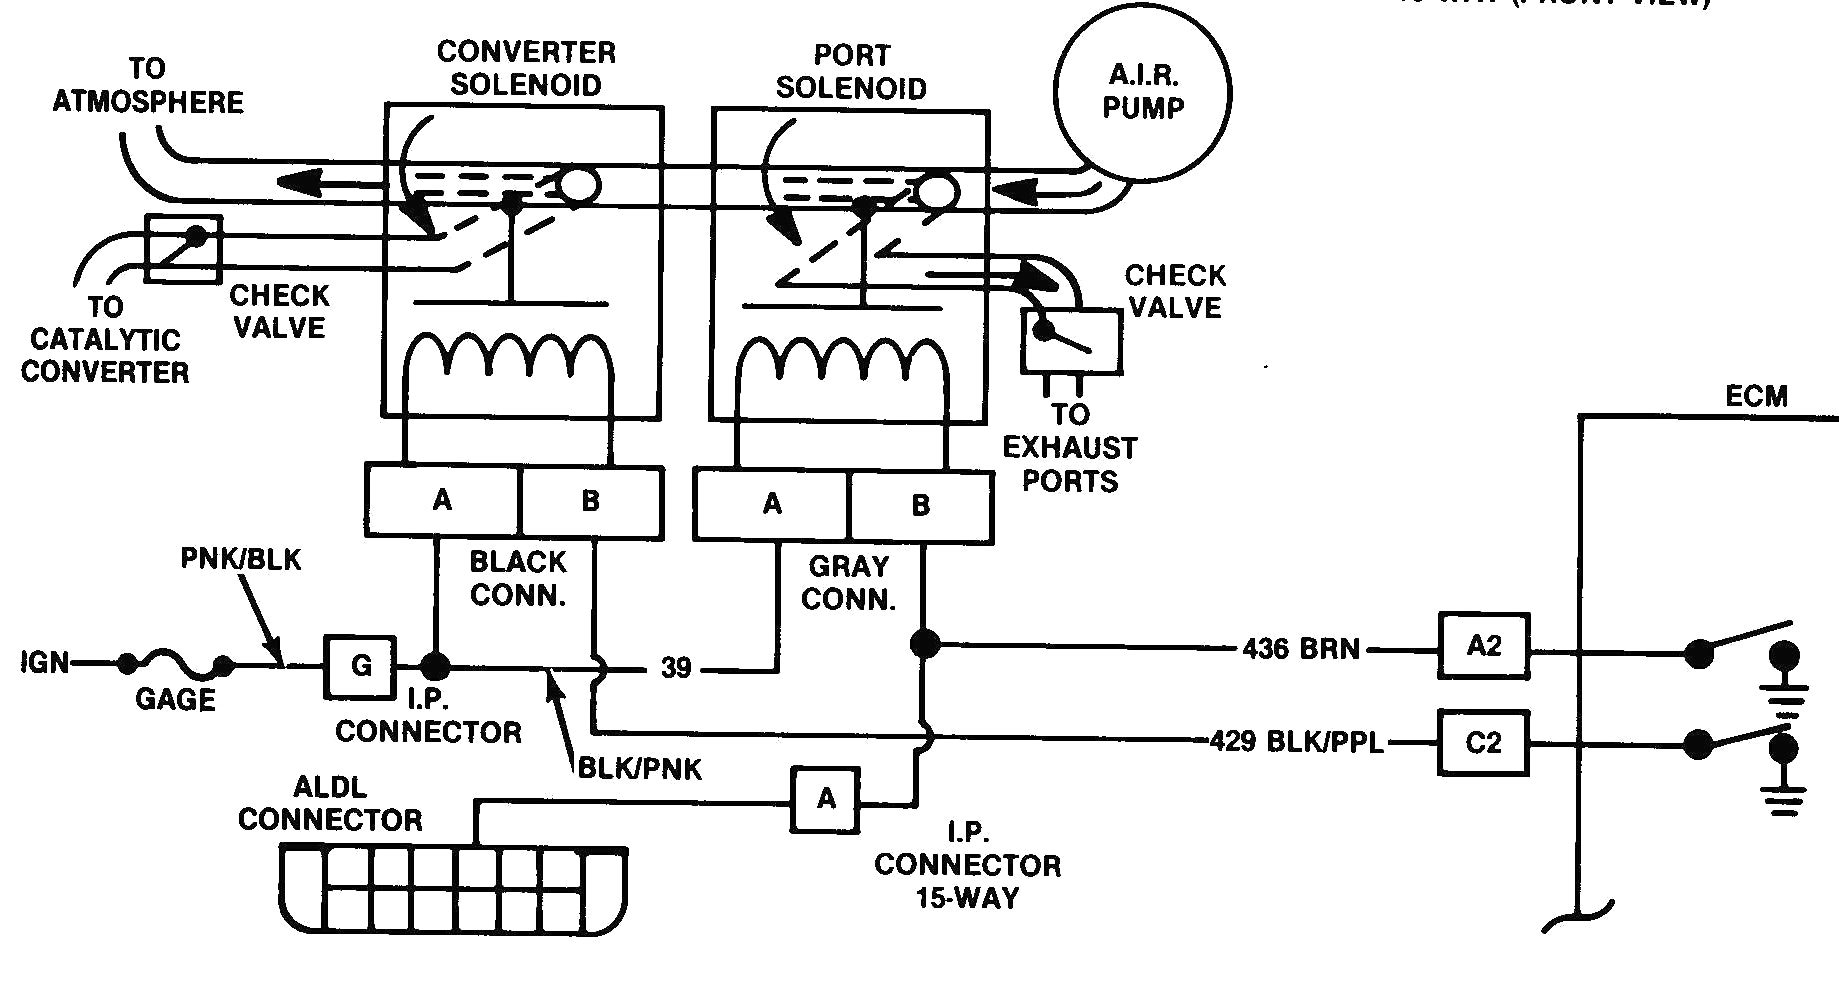 Valve Wiring Diagram